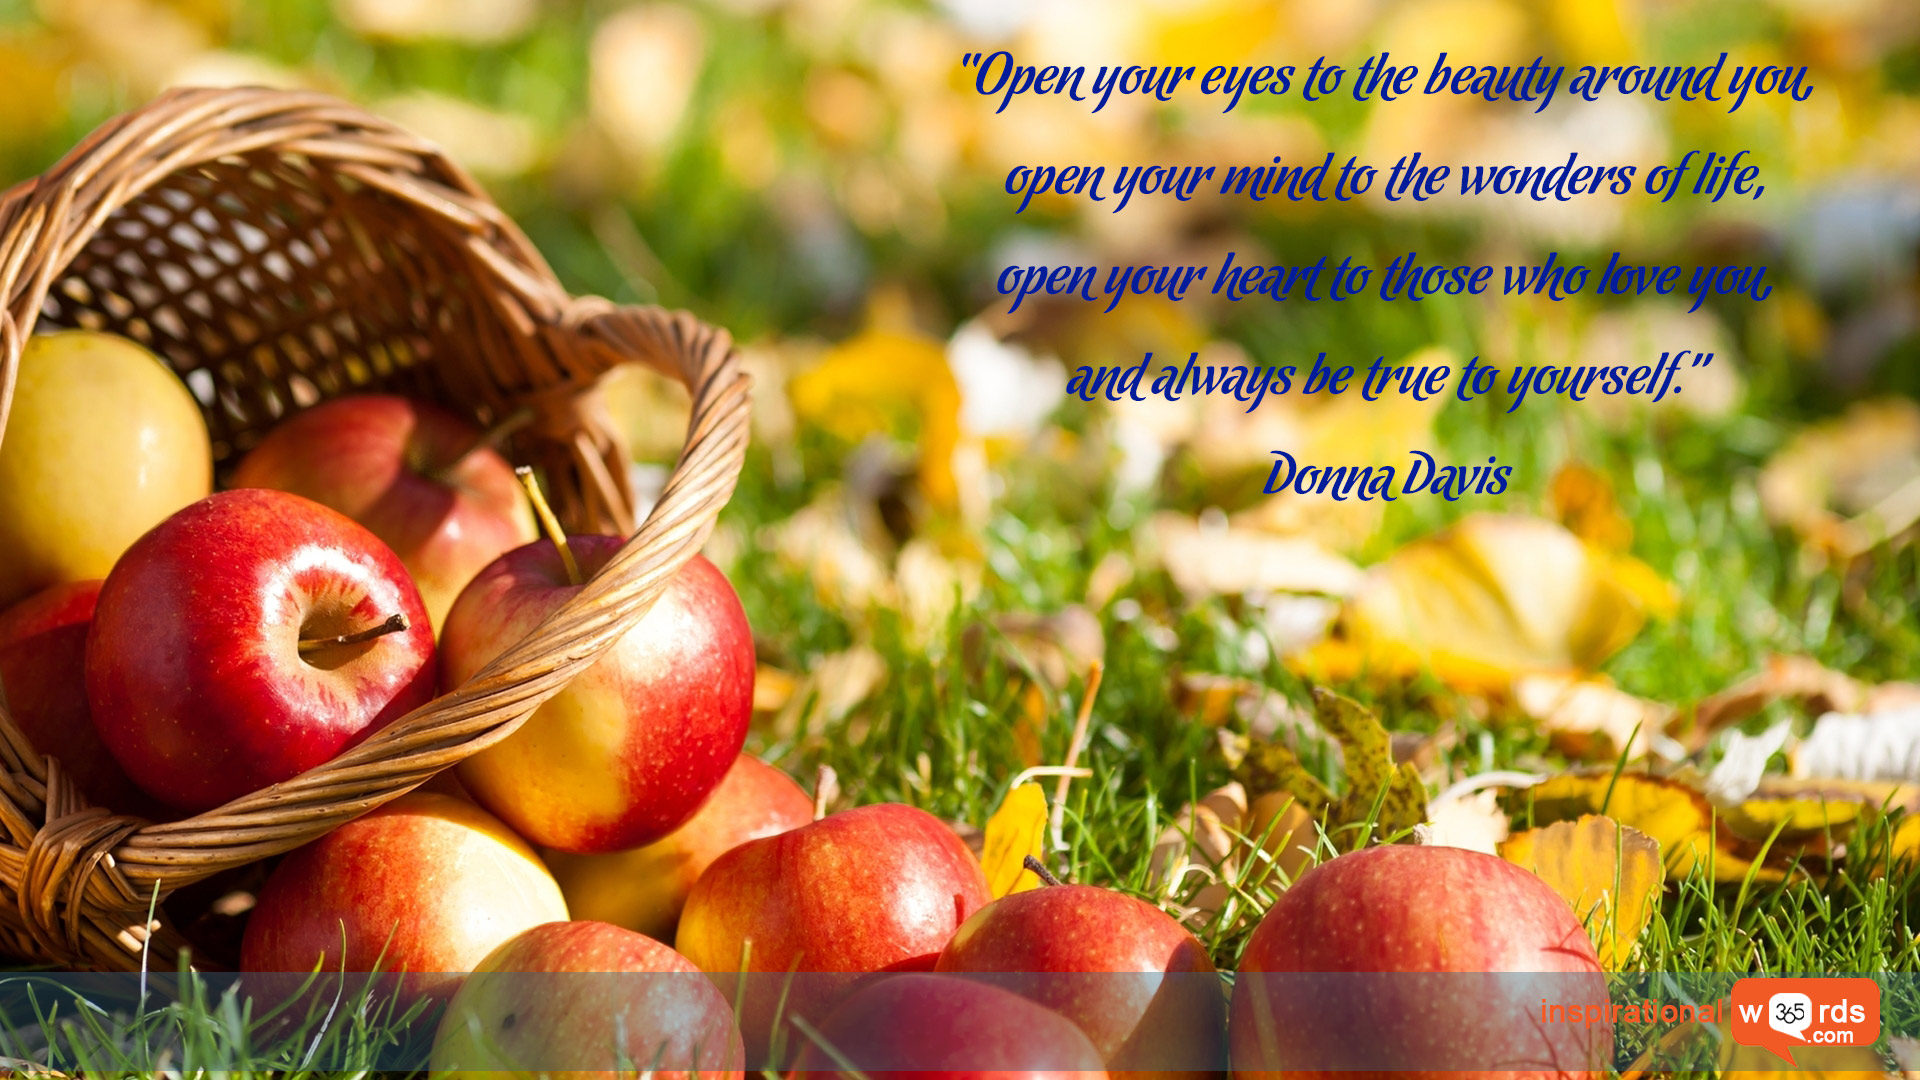 Inspirational Wallpaper Quote by Donna Davis